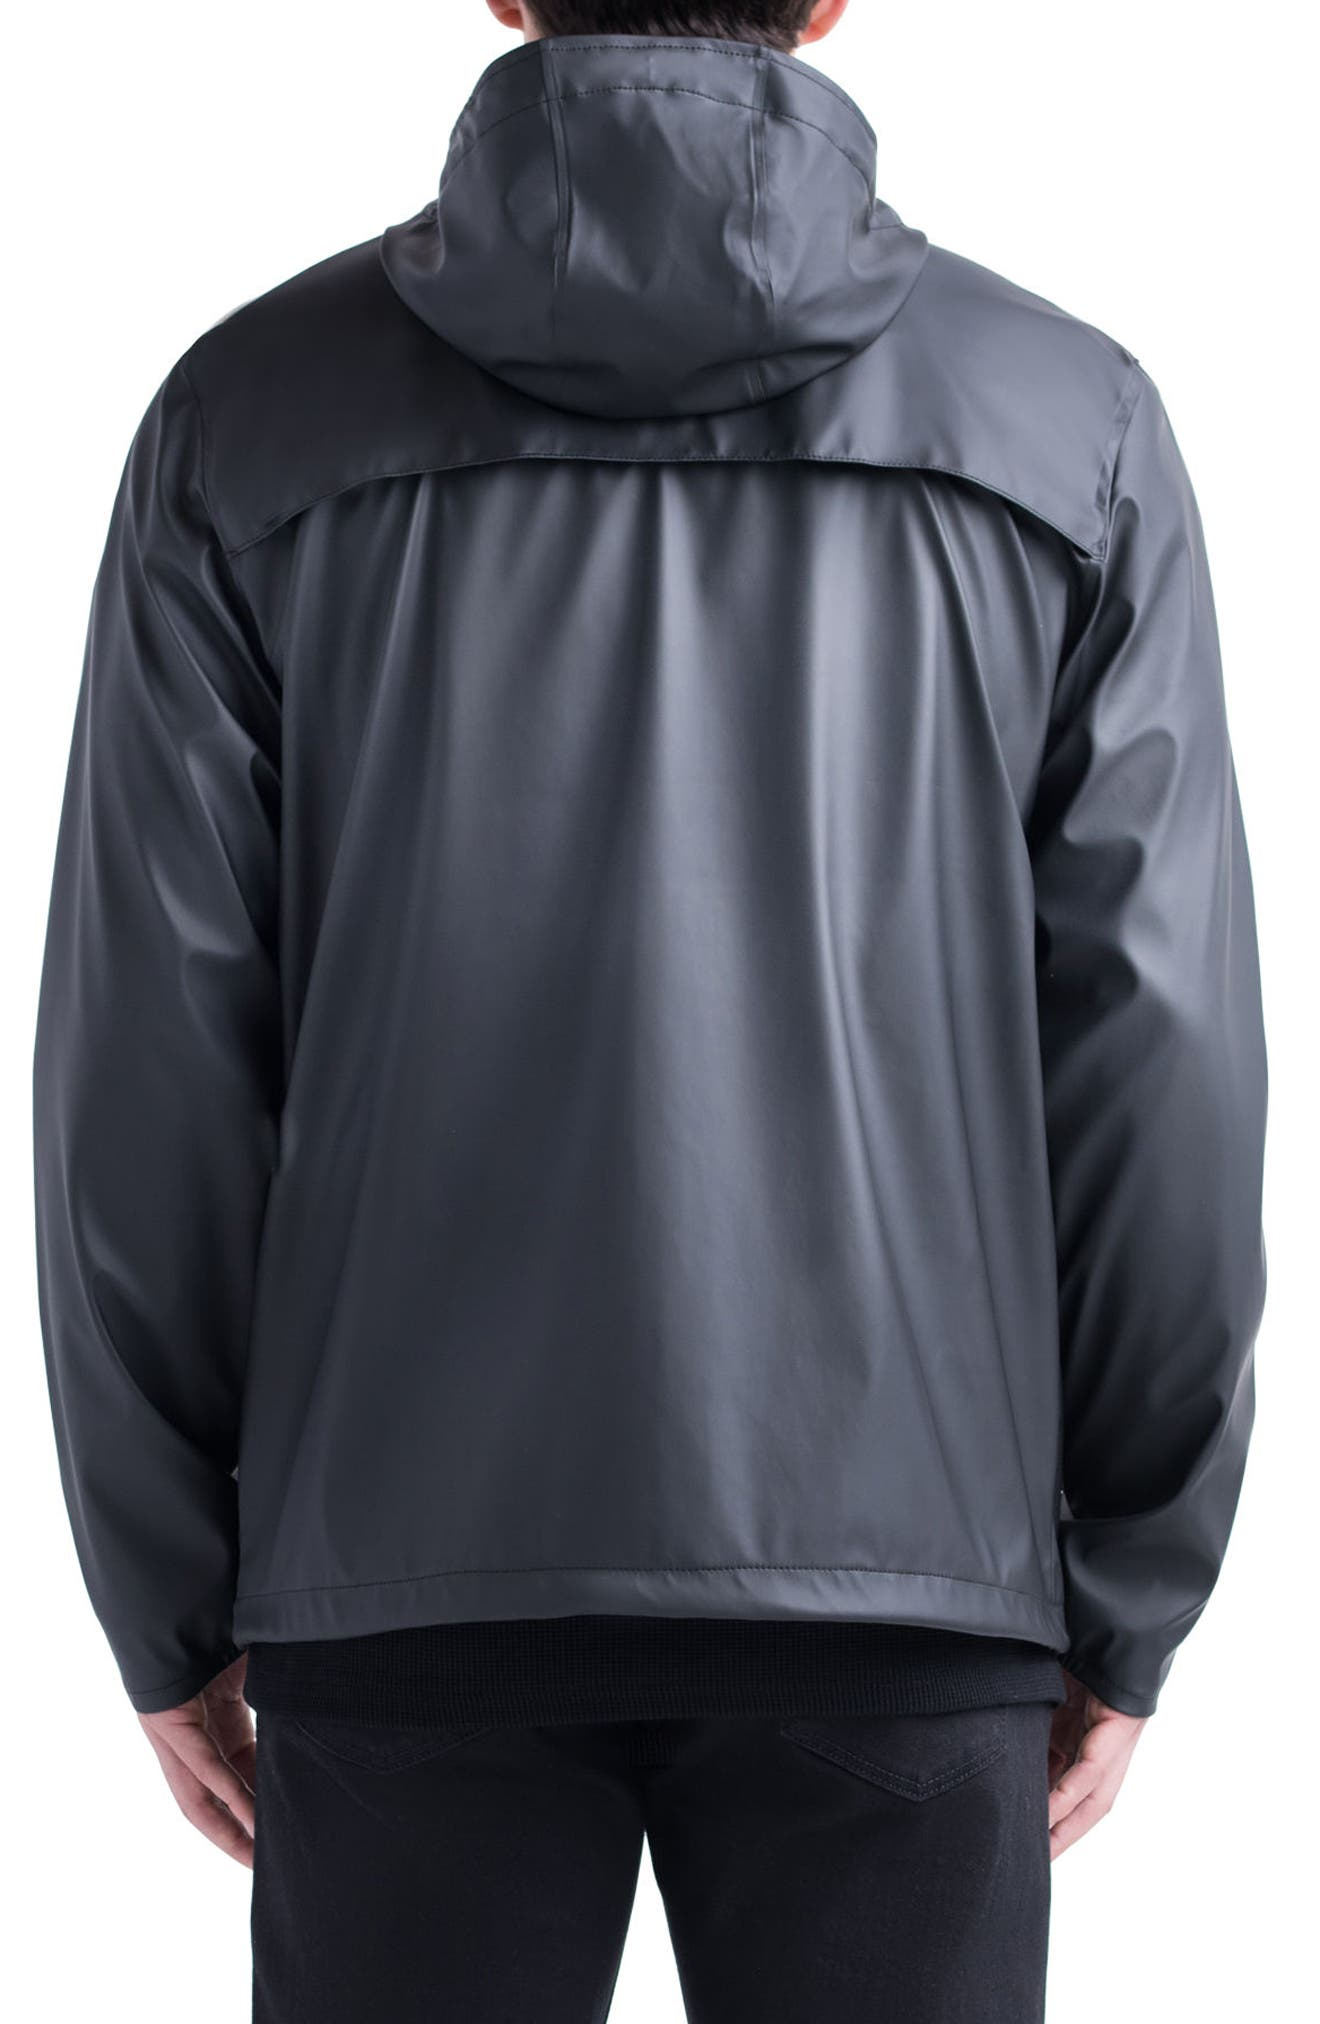 Forecast Hooded Coaches Jacket,                             Alternate thumbnail 9, color,